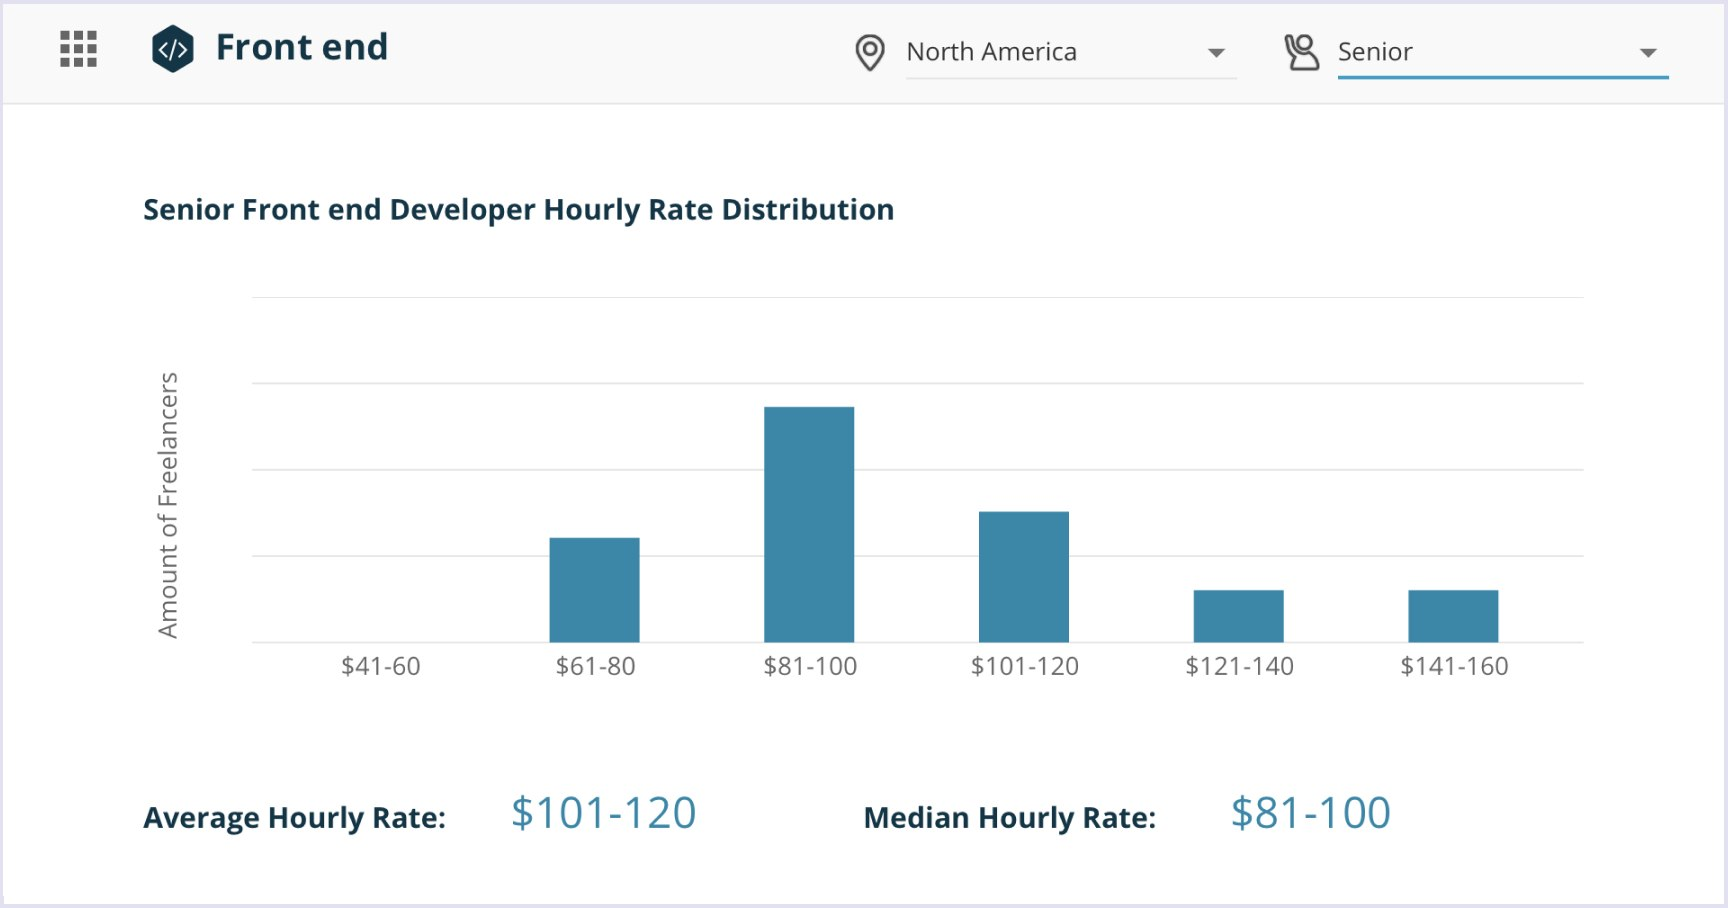 Senior front end developer hourly rate distribution in North America